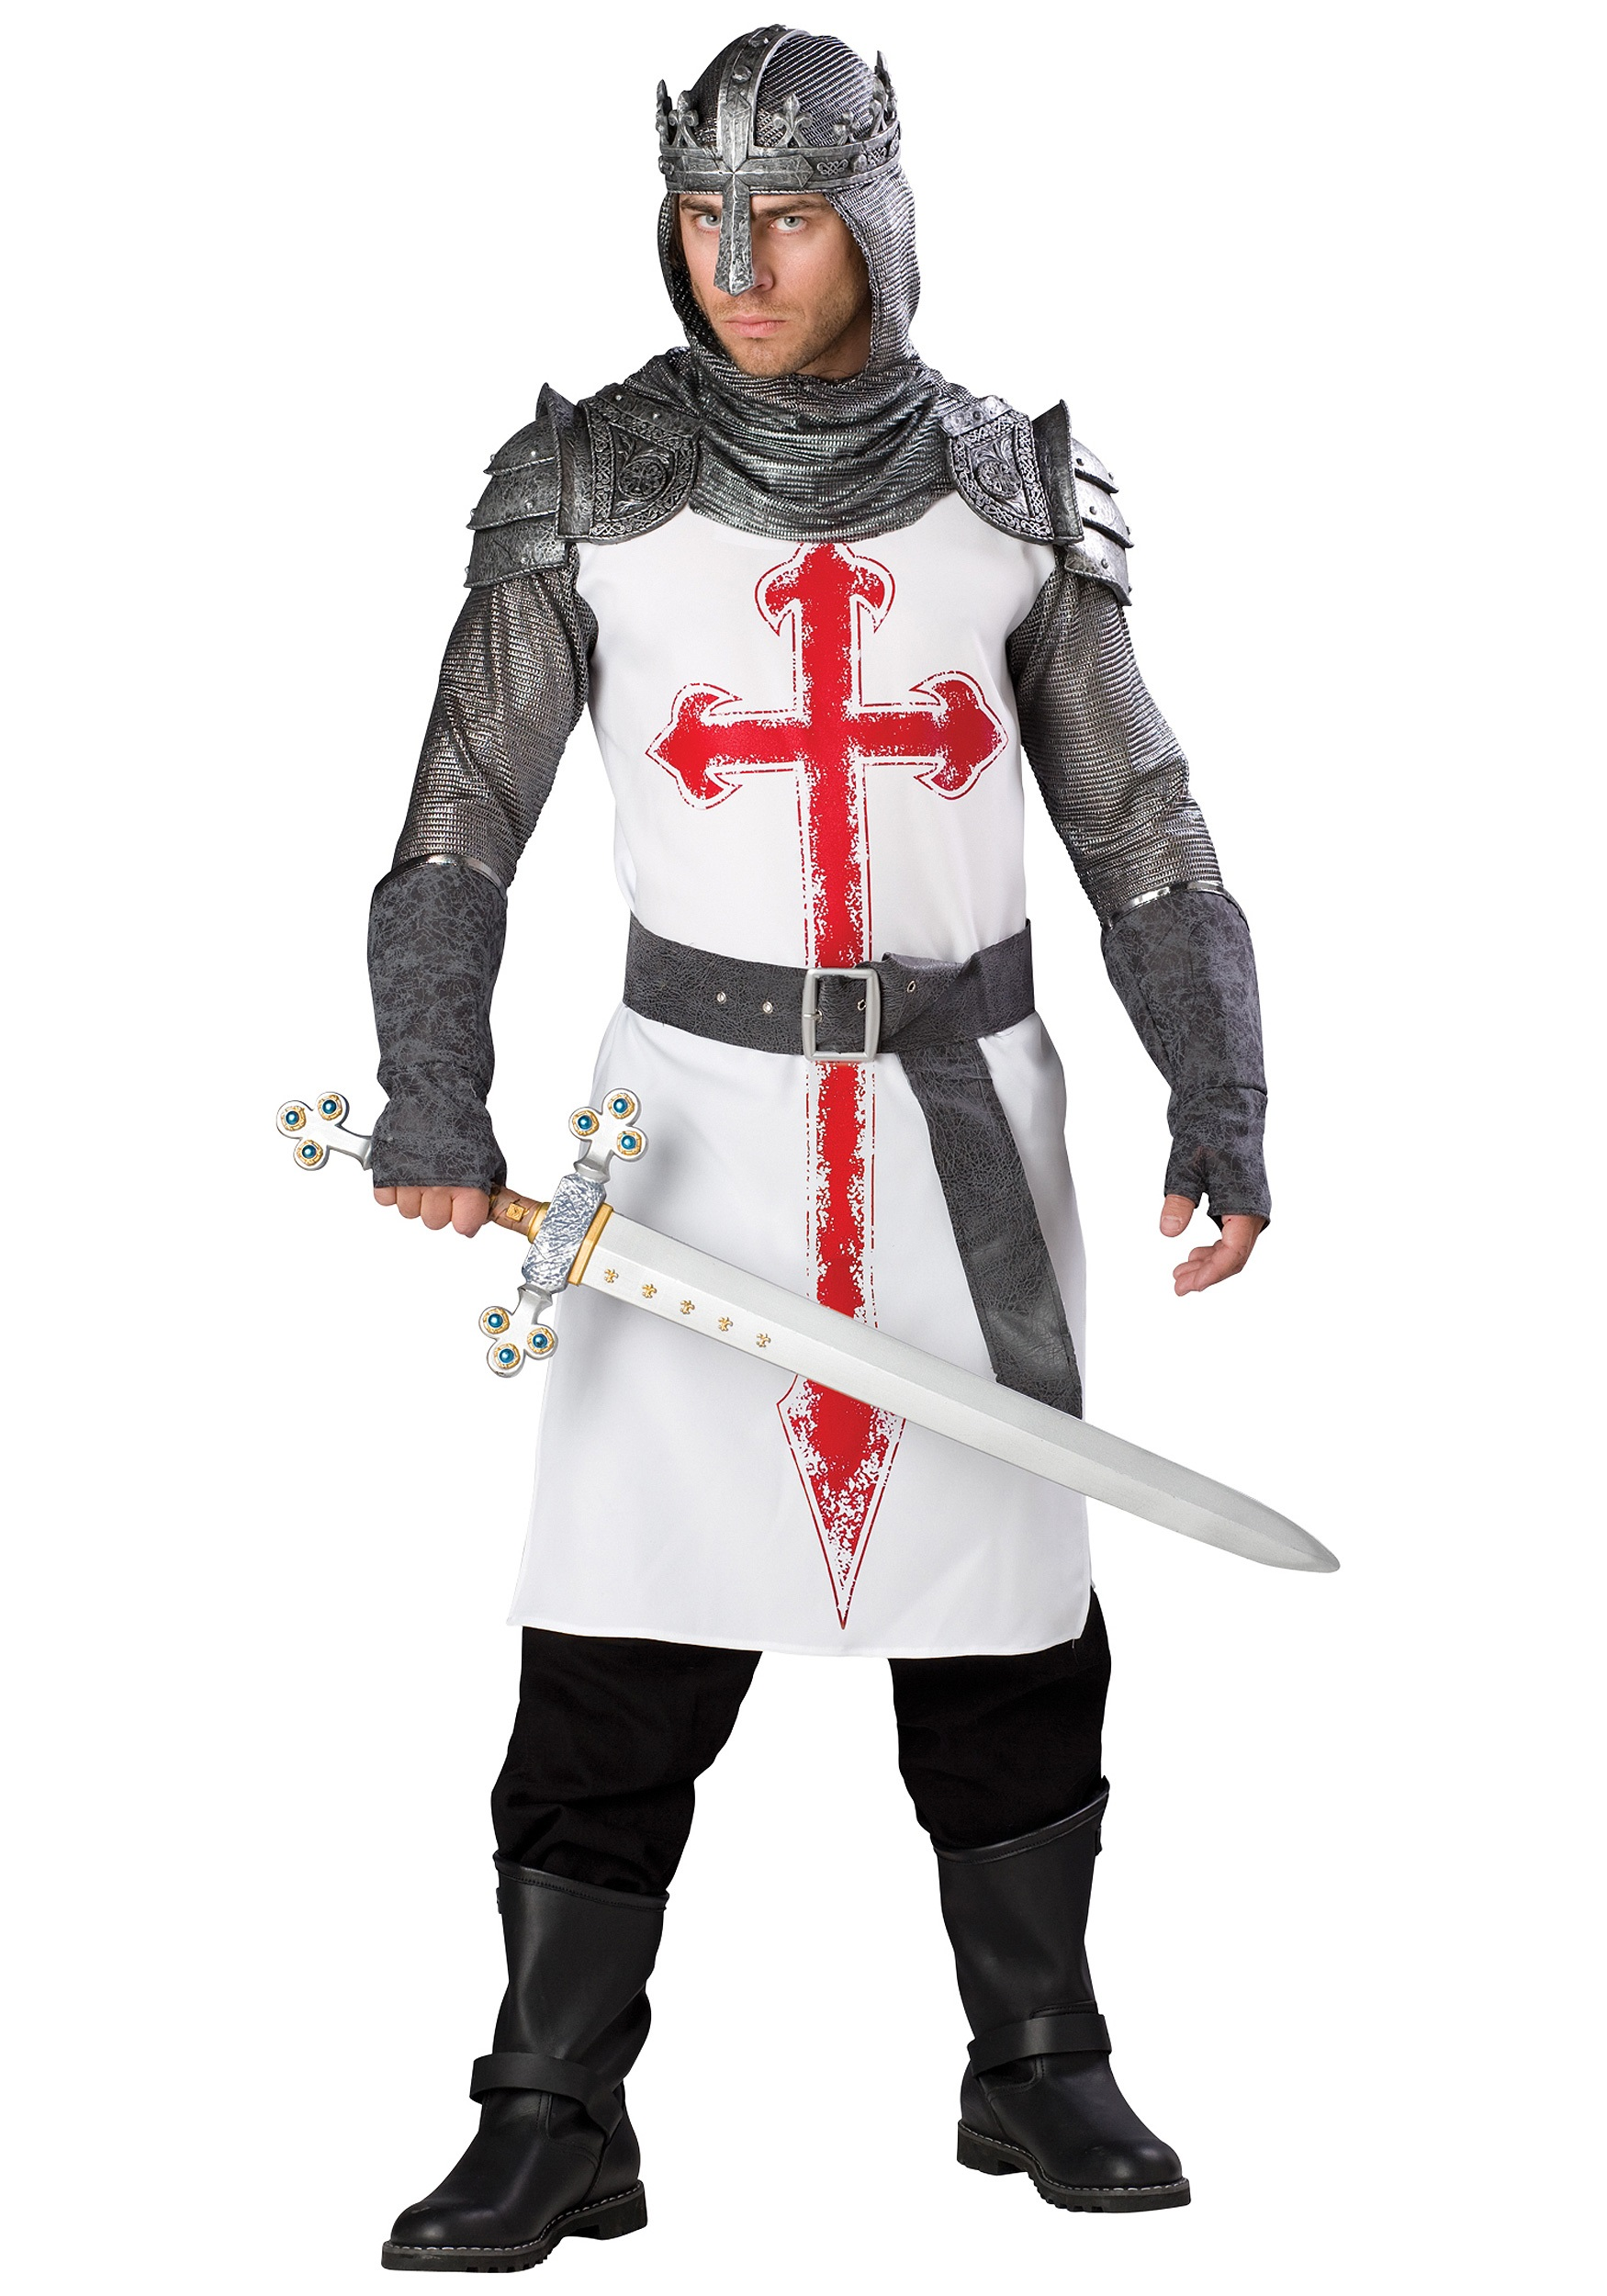 Deluxe Crusader Knight Costume for Men